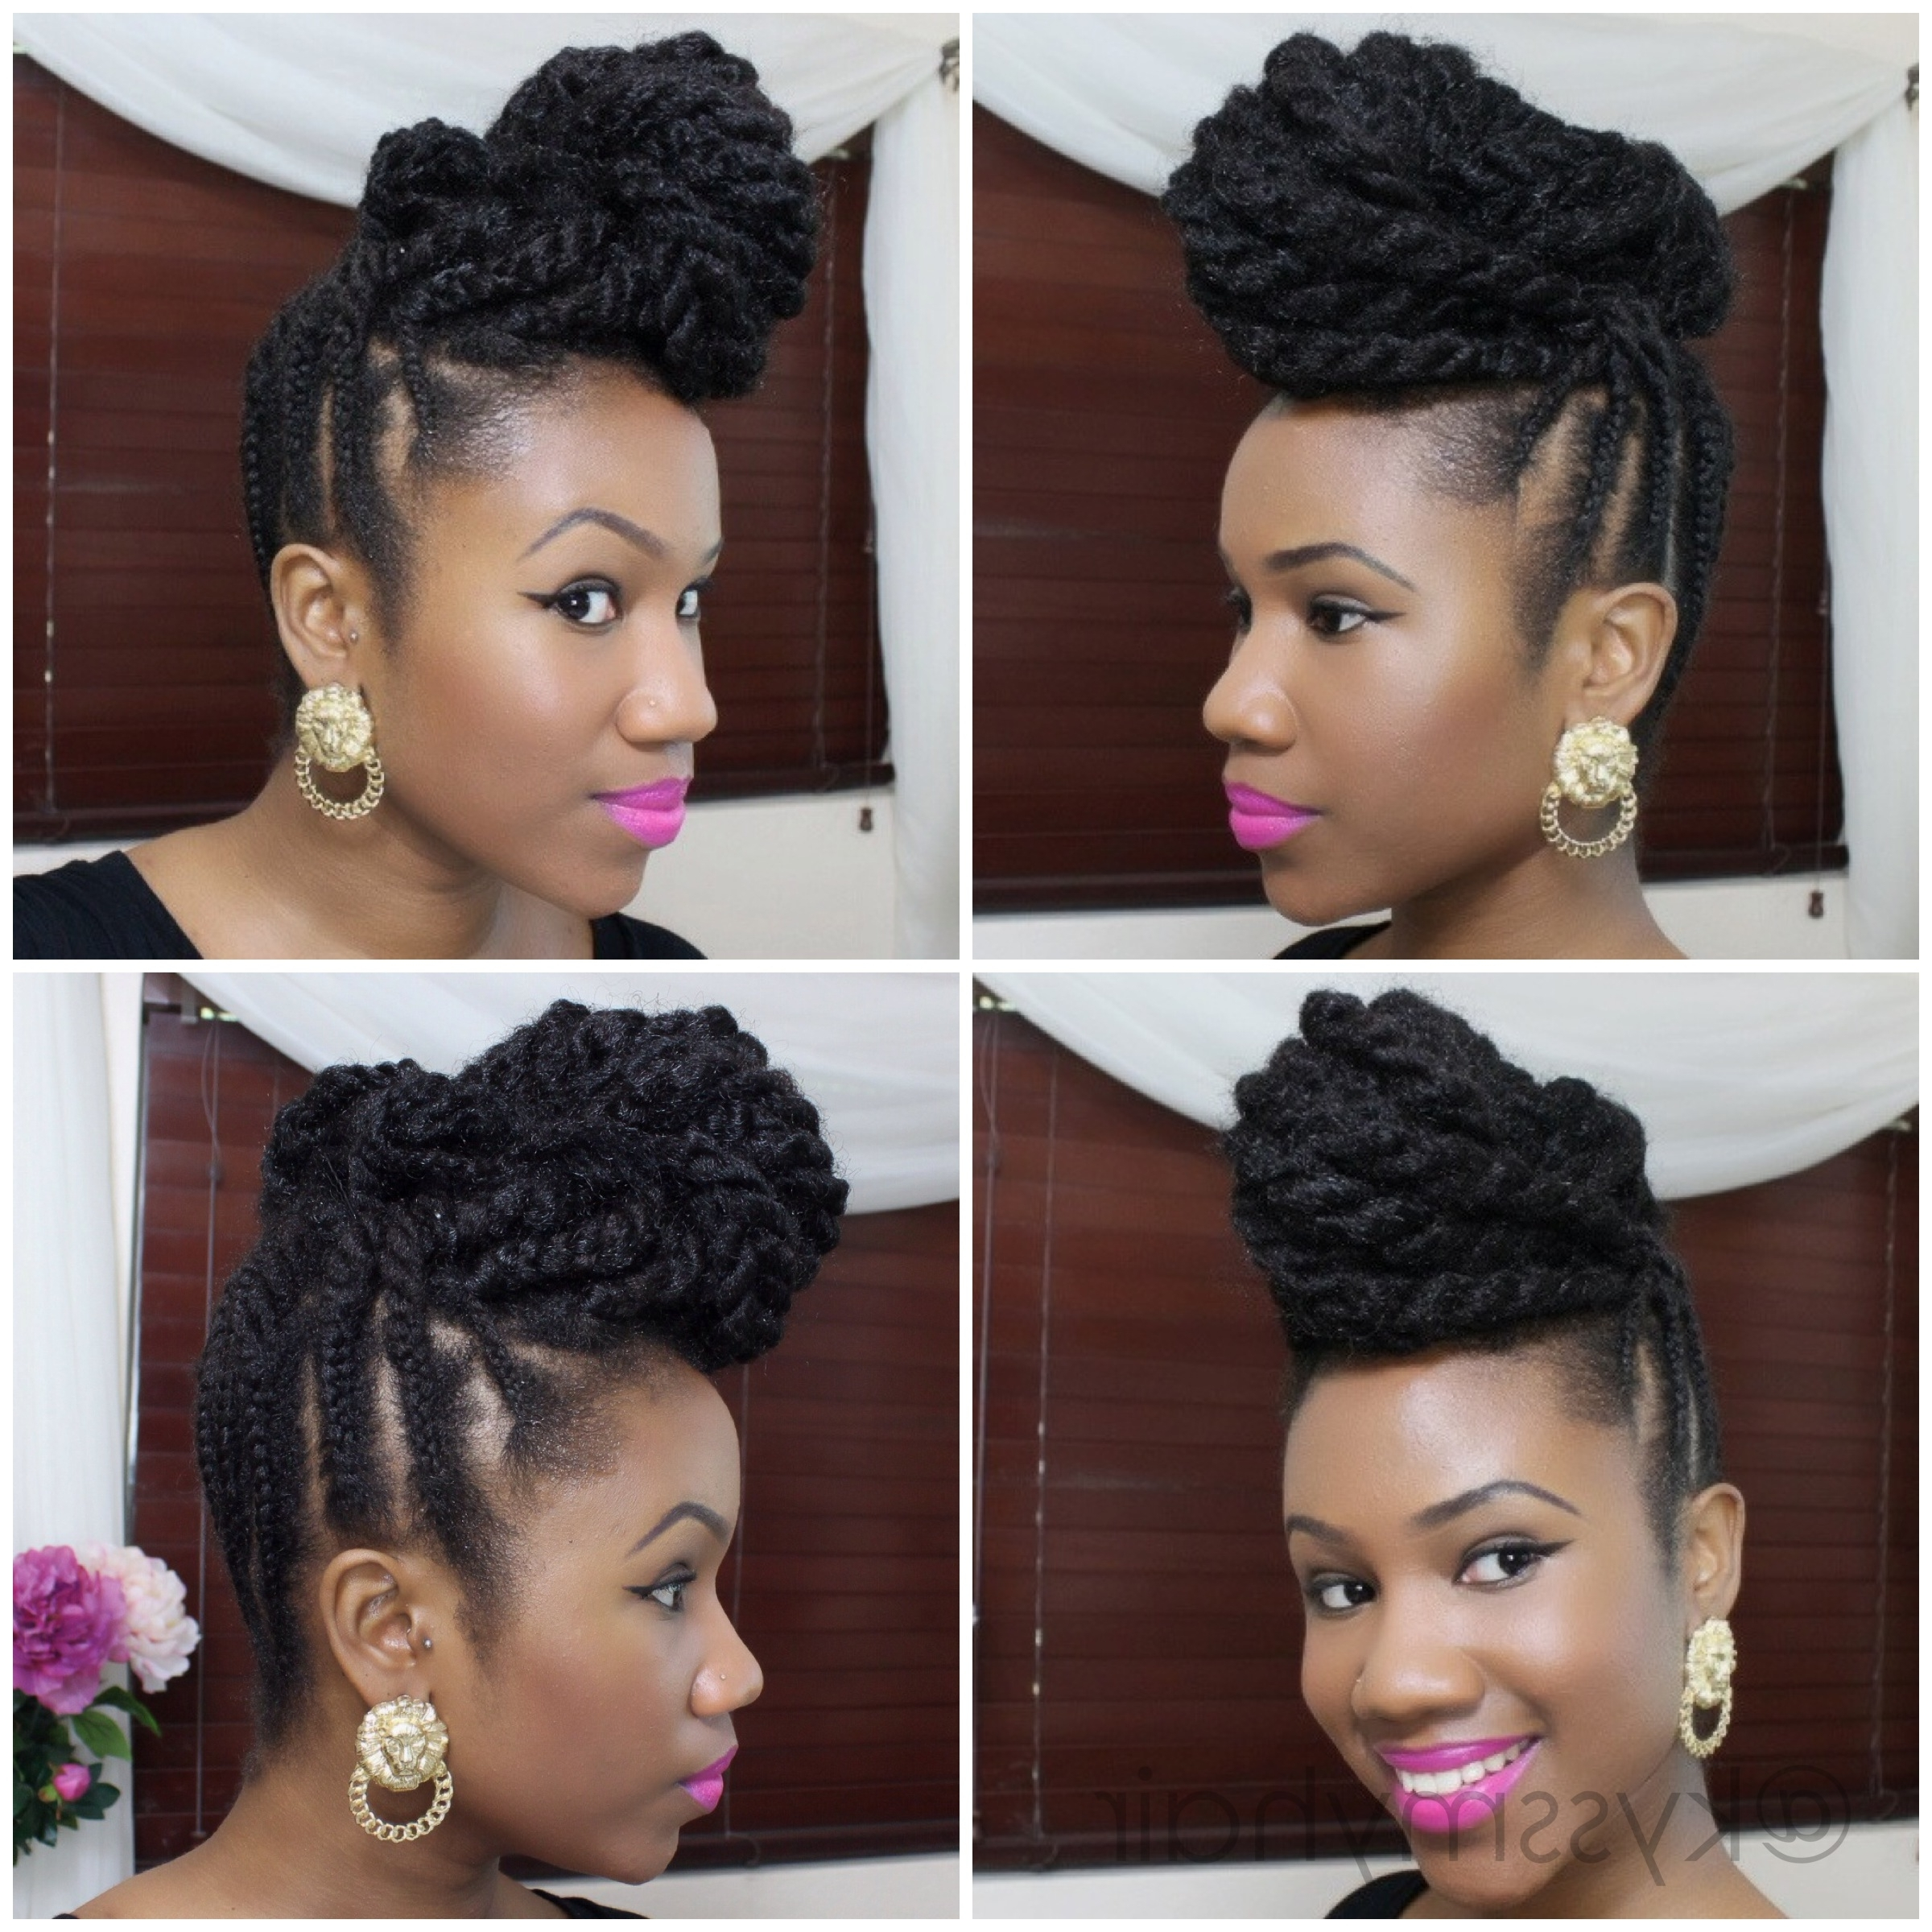 Braided Updo On Natural Hair Using Marley Hair Best Ideas Of Natural Intended For Updos Hairstyles For Natural Black Hair (View 9 of 15)